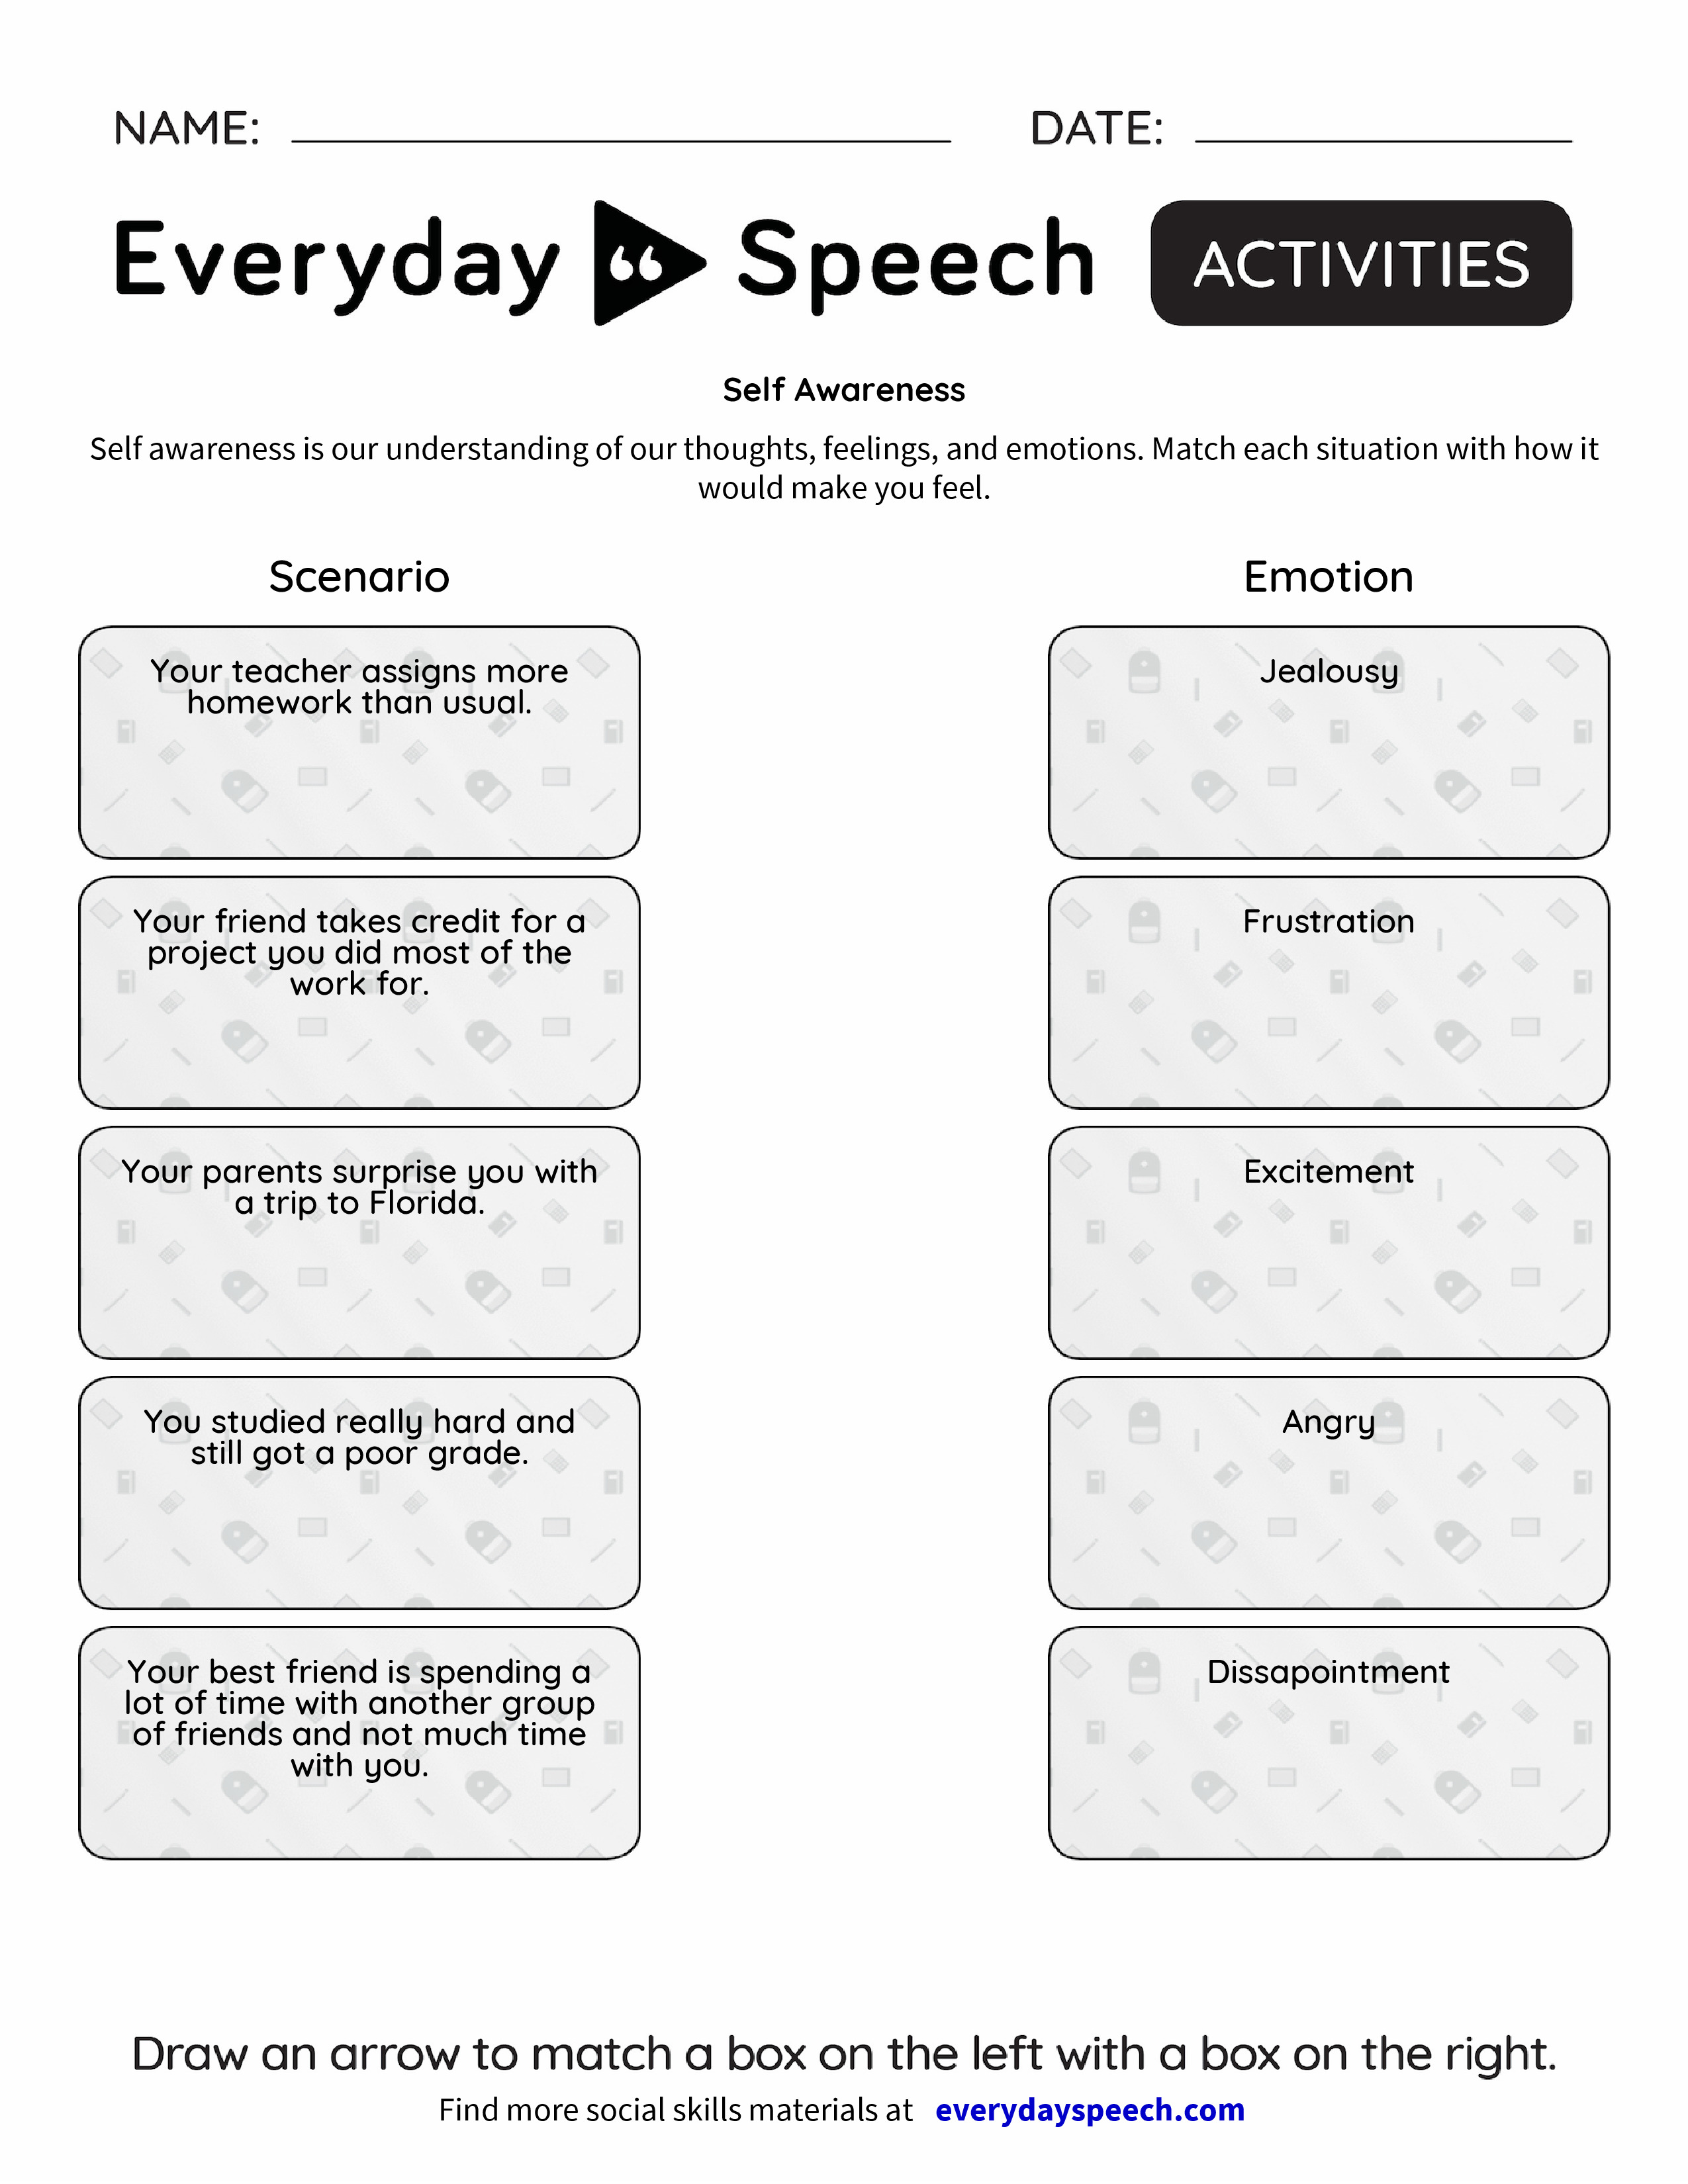 Worksheets Self Awareness Worksheets self awareness everyday speech preview preview